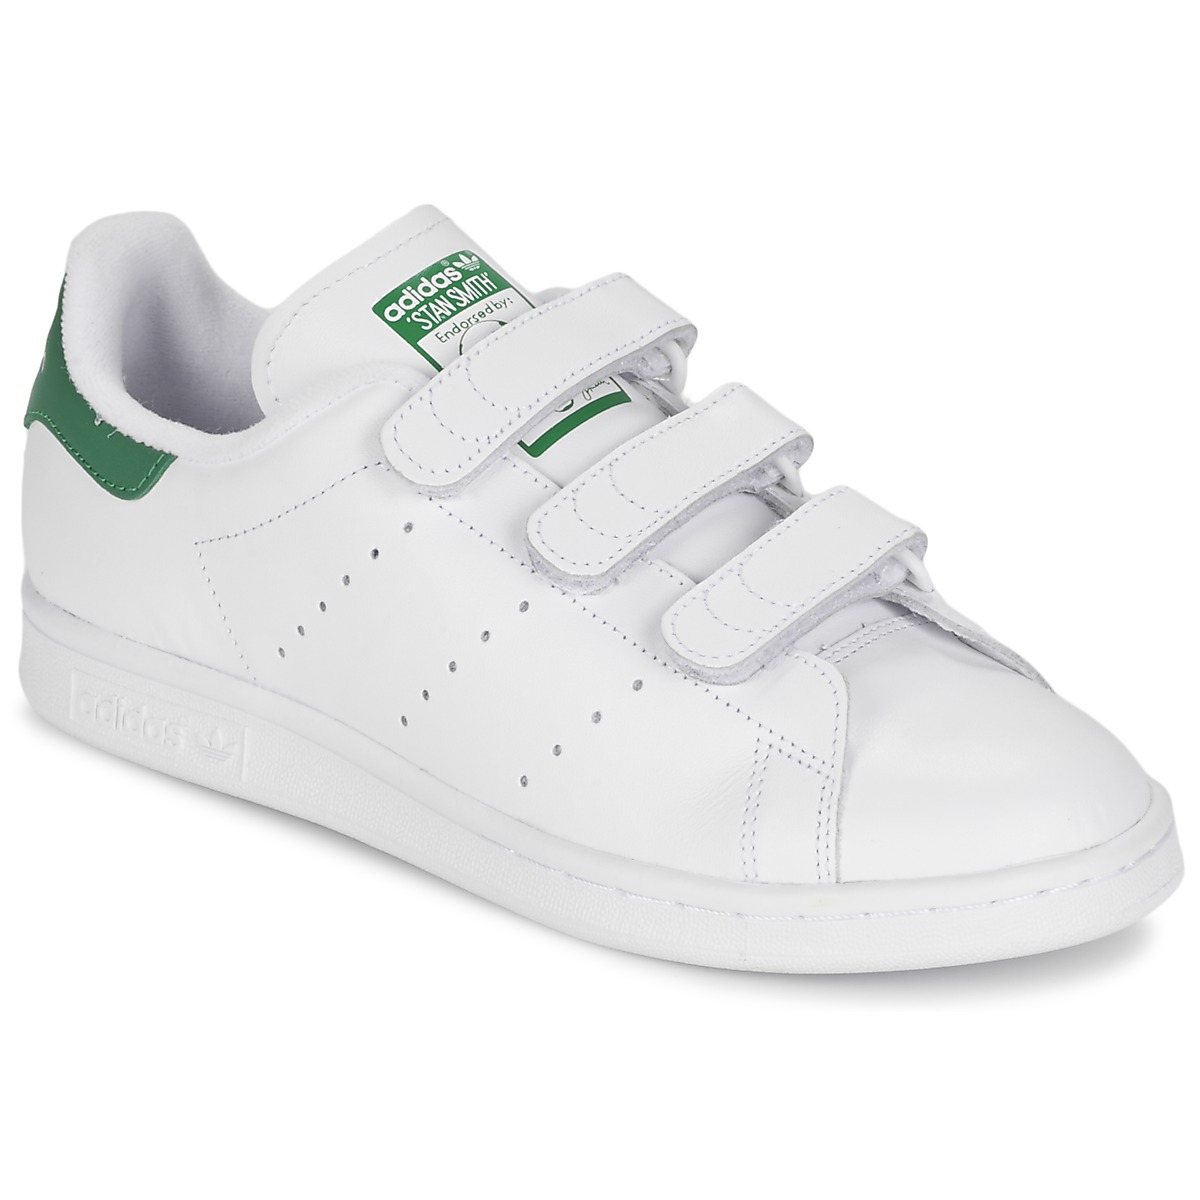 Stan smith noir homme soldes